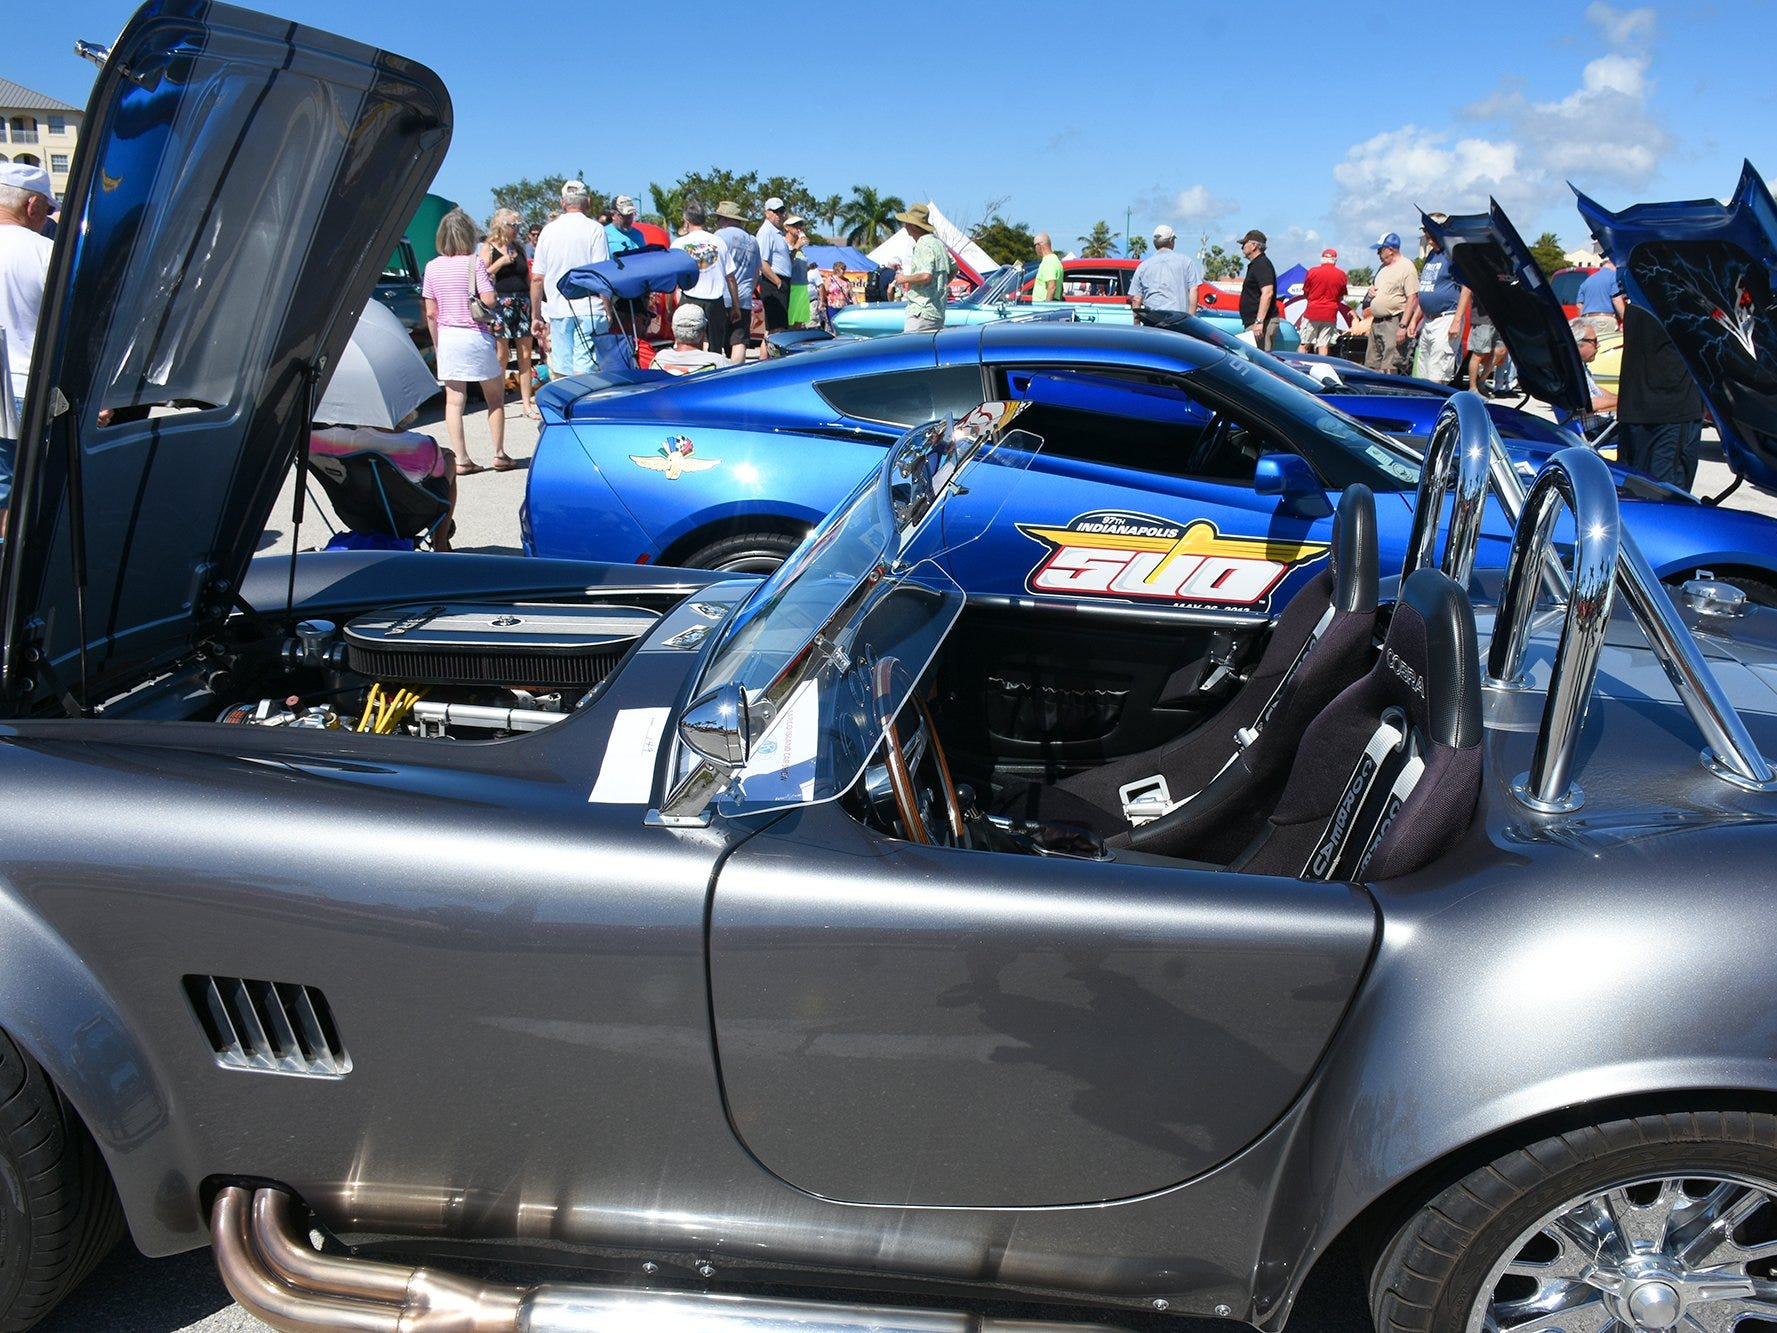 Nick Smith, a professional restorer, displayed this 1966 Shelby Cobra. The annual Kiwanis car show brought 170 collectible cars and thousands of car enthusiasts to Veterans Community Park on Marco Island Sunday.